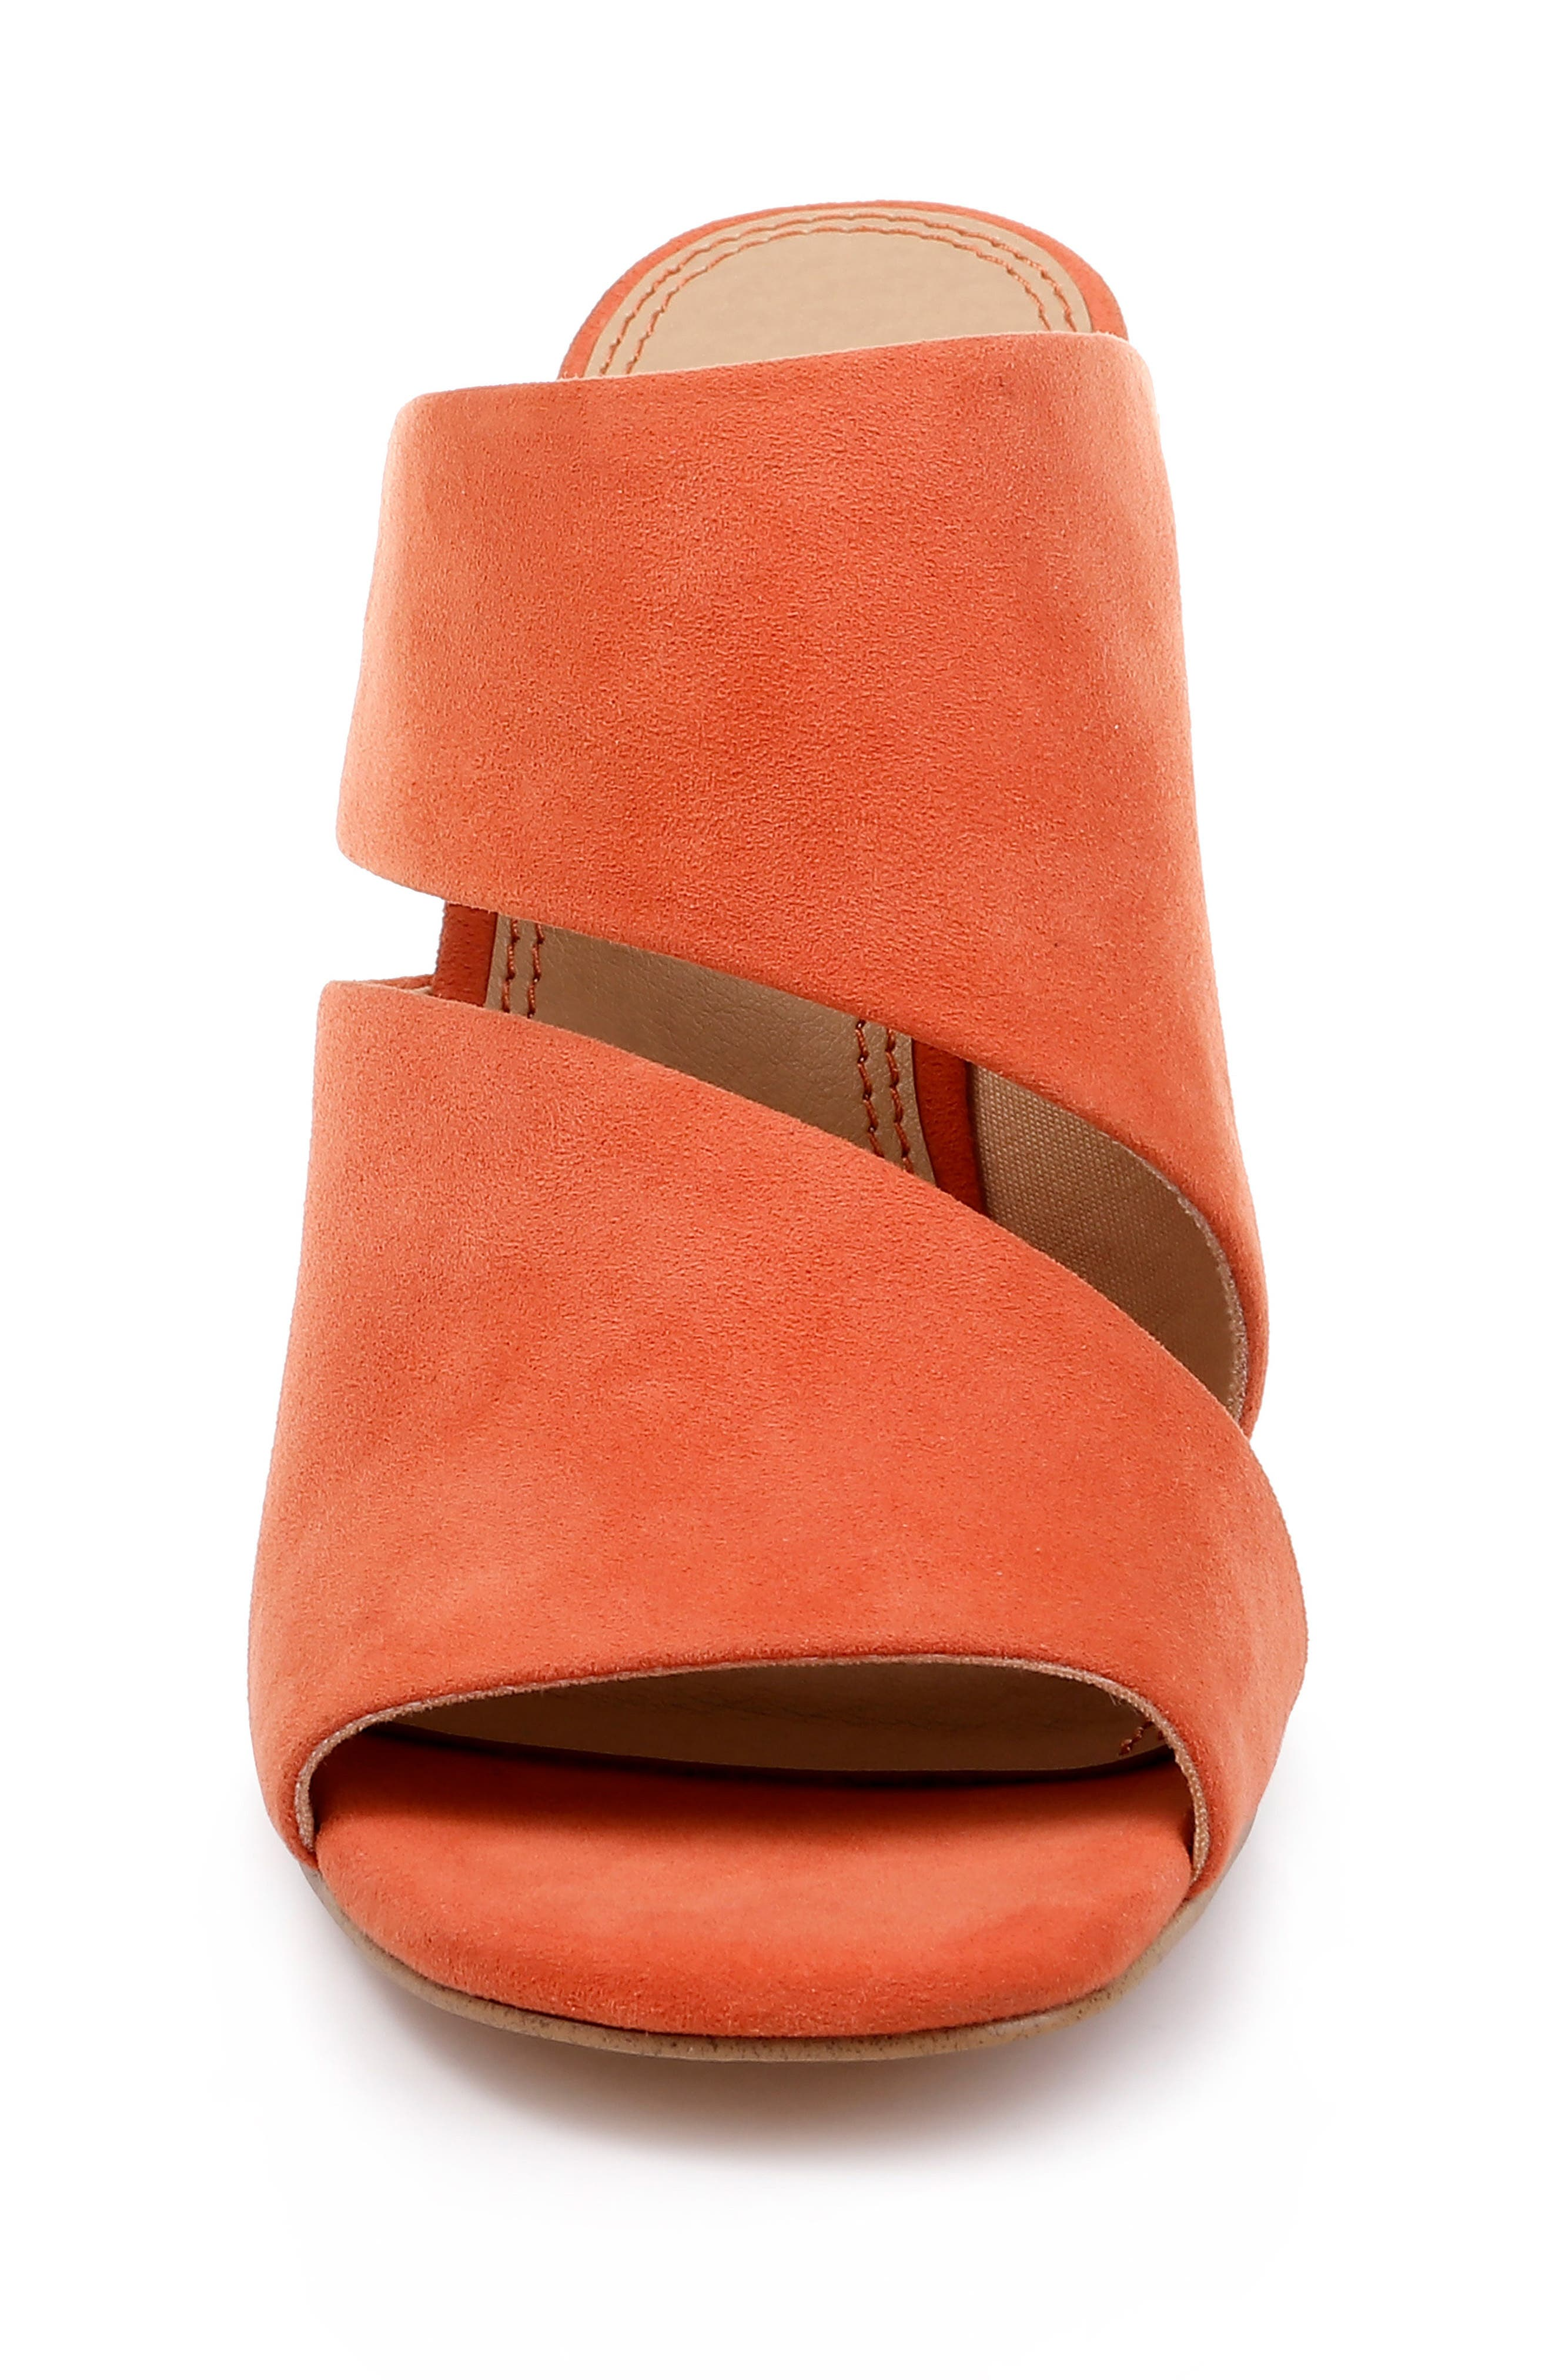 Serenade Sandal,                             Alternate thumbnail 4, color,                             ORANGE SUEDE